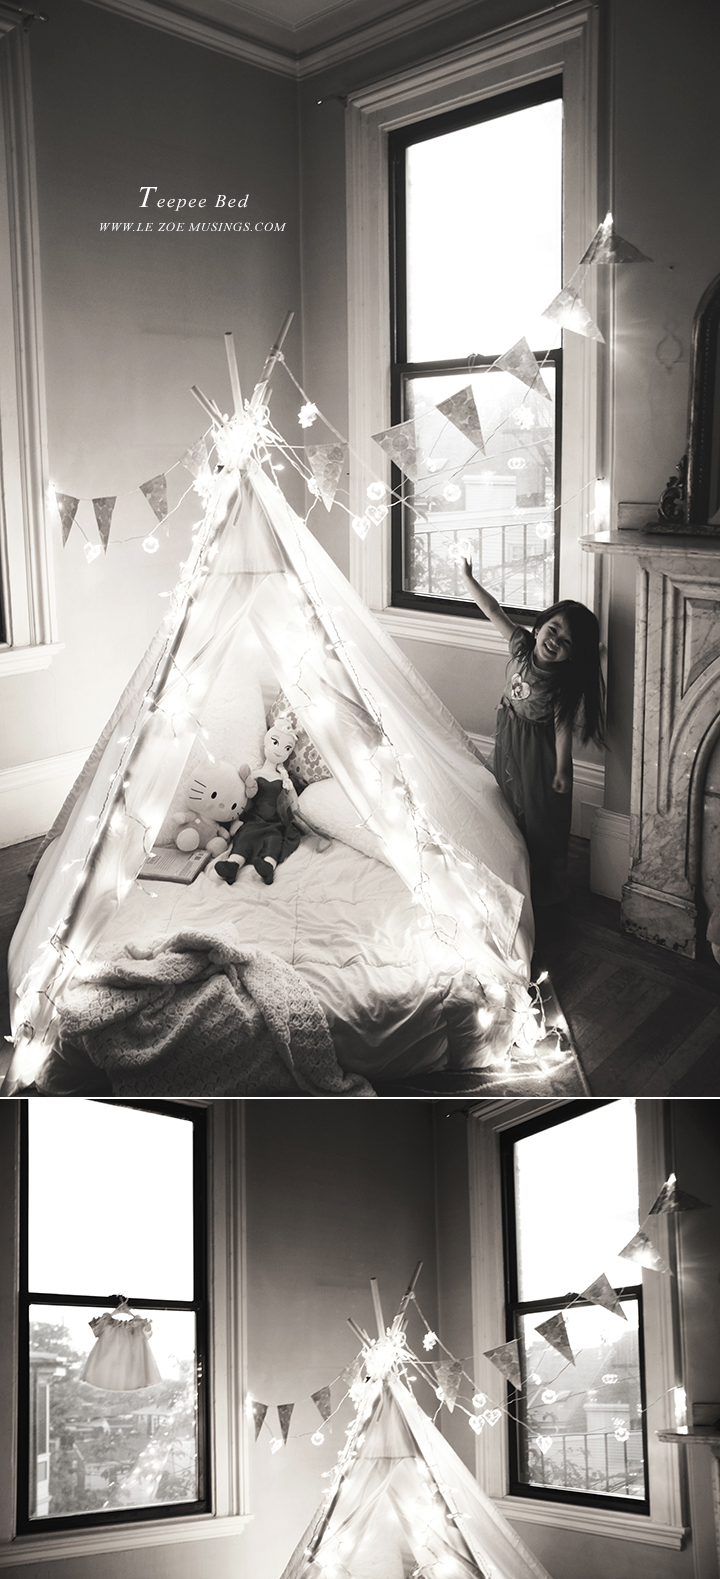 Kid's room teepee by Le Zoe Musings 91